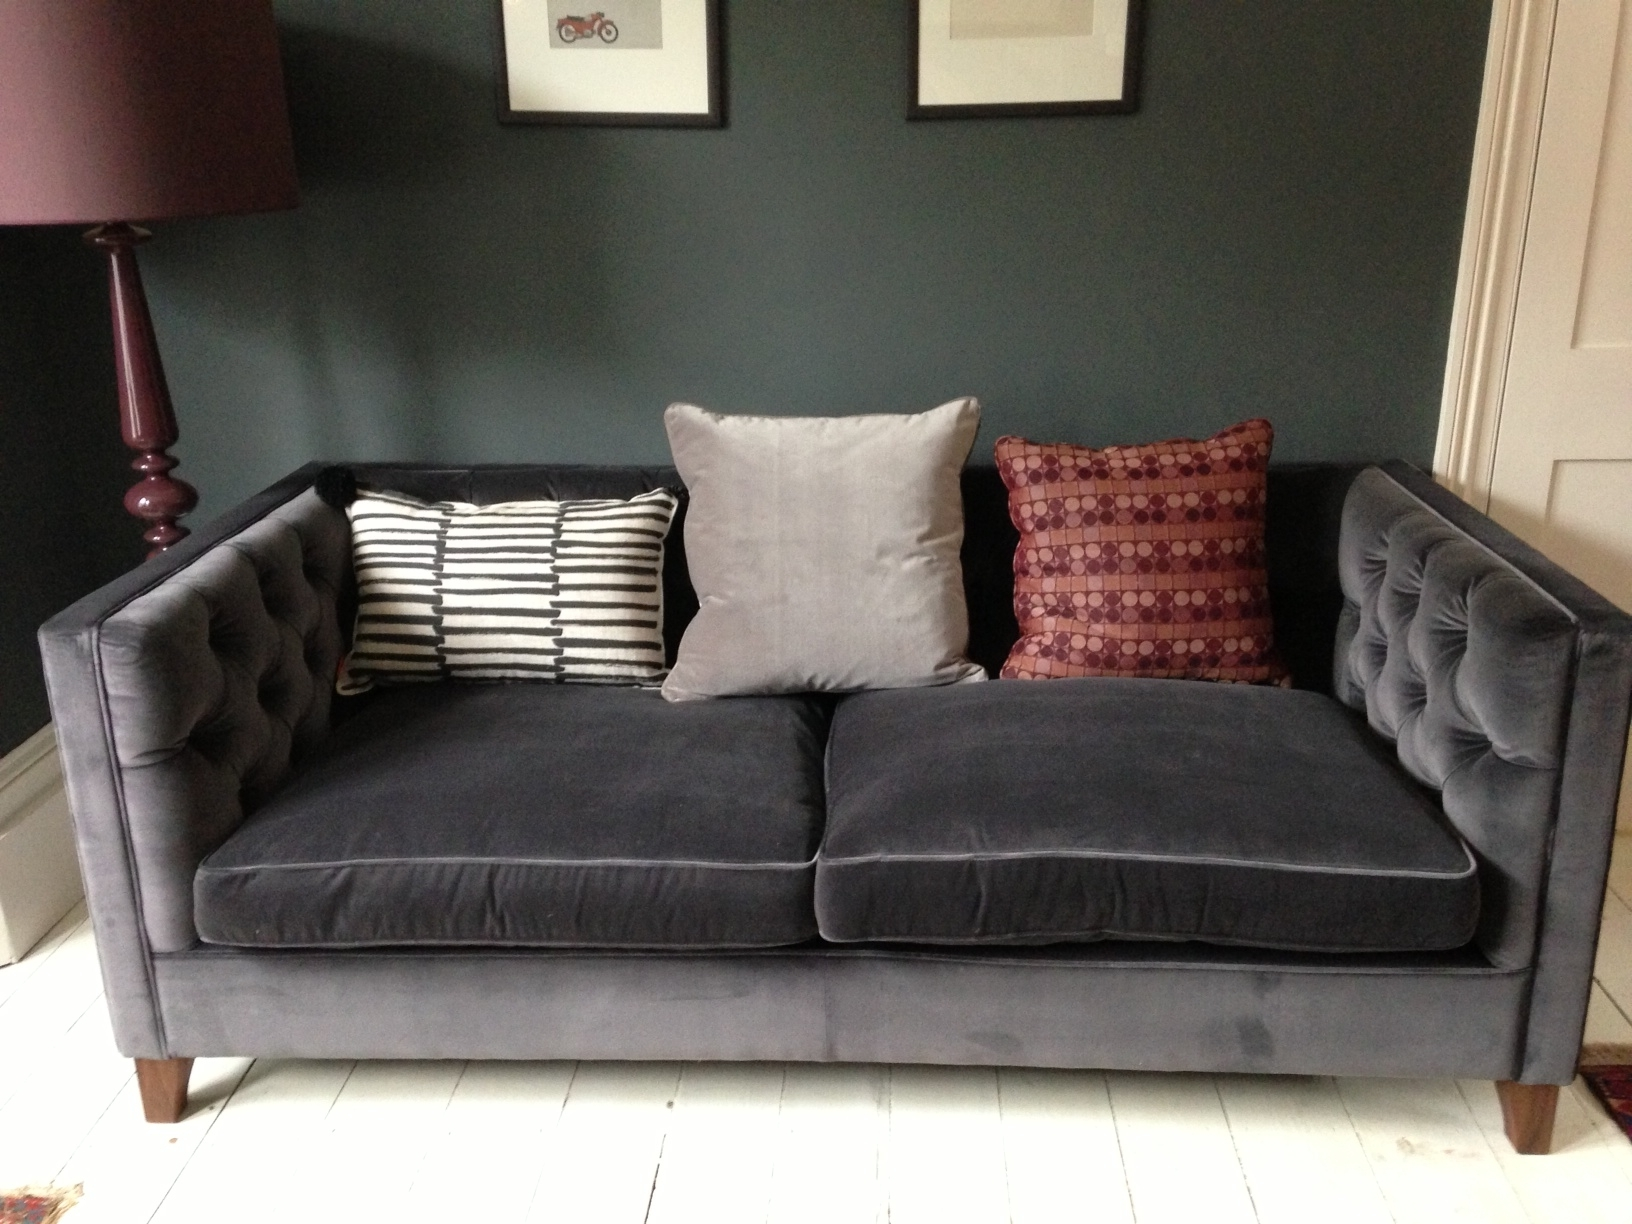 Fashionable Velvet Sofas Within Inspirational Velvet Sofas 52 On Modern Sofa Ideas With Velvet Sofas (View 11 of 20)